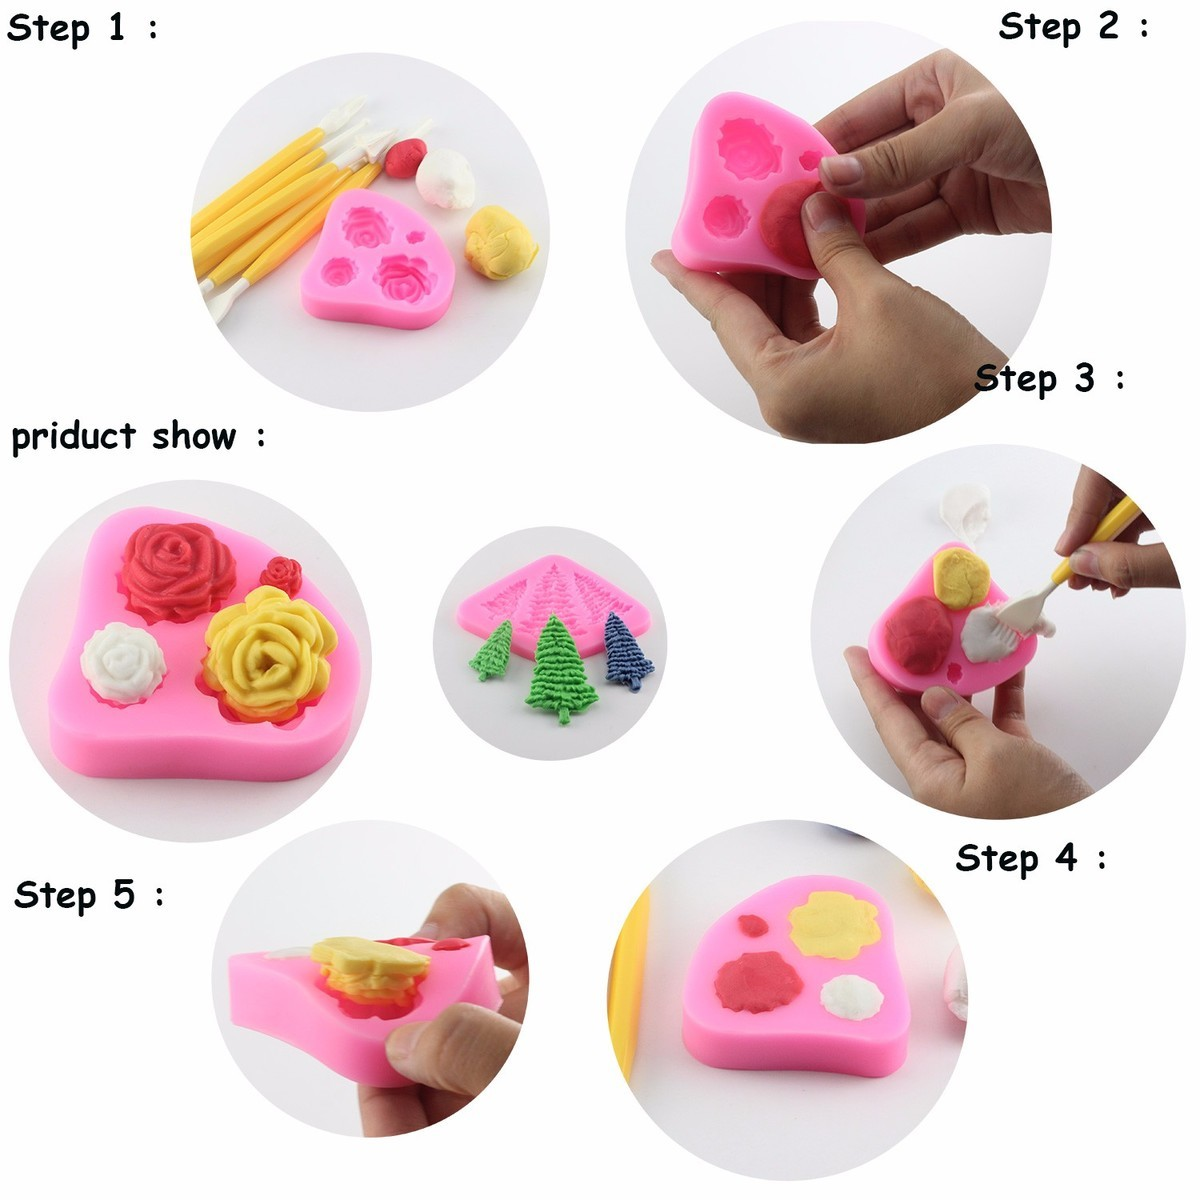 Mujiang rose daisy flower fondant molds cake border silicone mold mujiang rose daisy flower fondant molds cake border silicone mold cupcake decorating tools candy chocolate gumpaste clay moulds in clay extruders from home izmirmasajfo